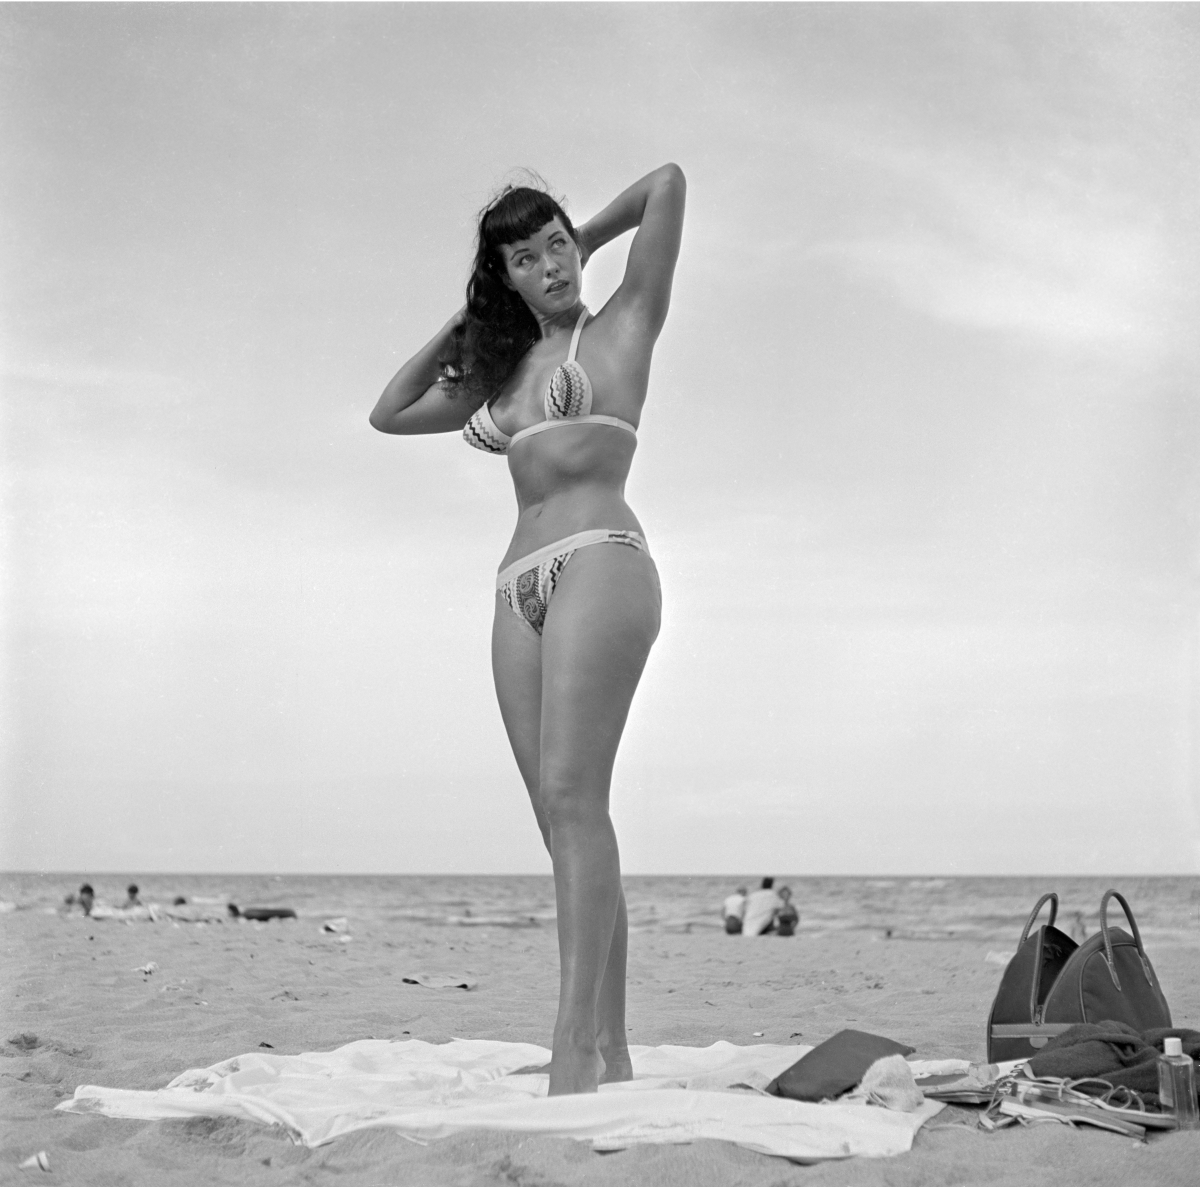 Bettie Page bunny yeager florida beach photo shoot _p019